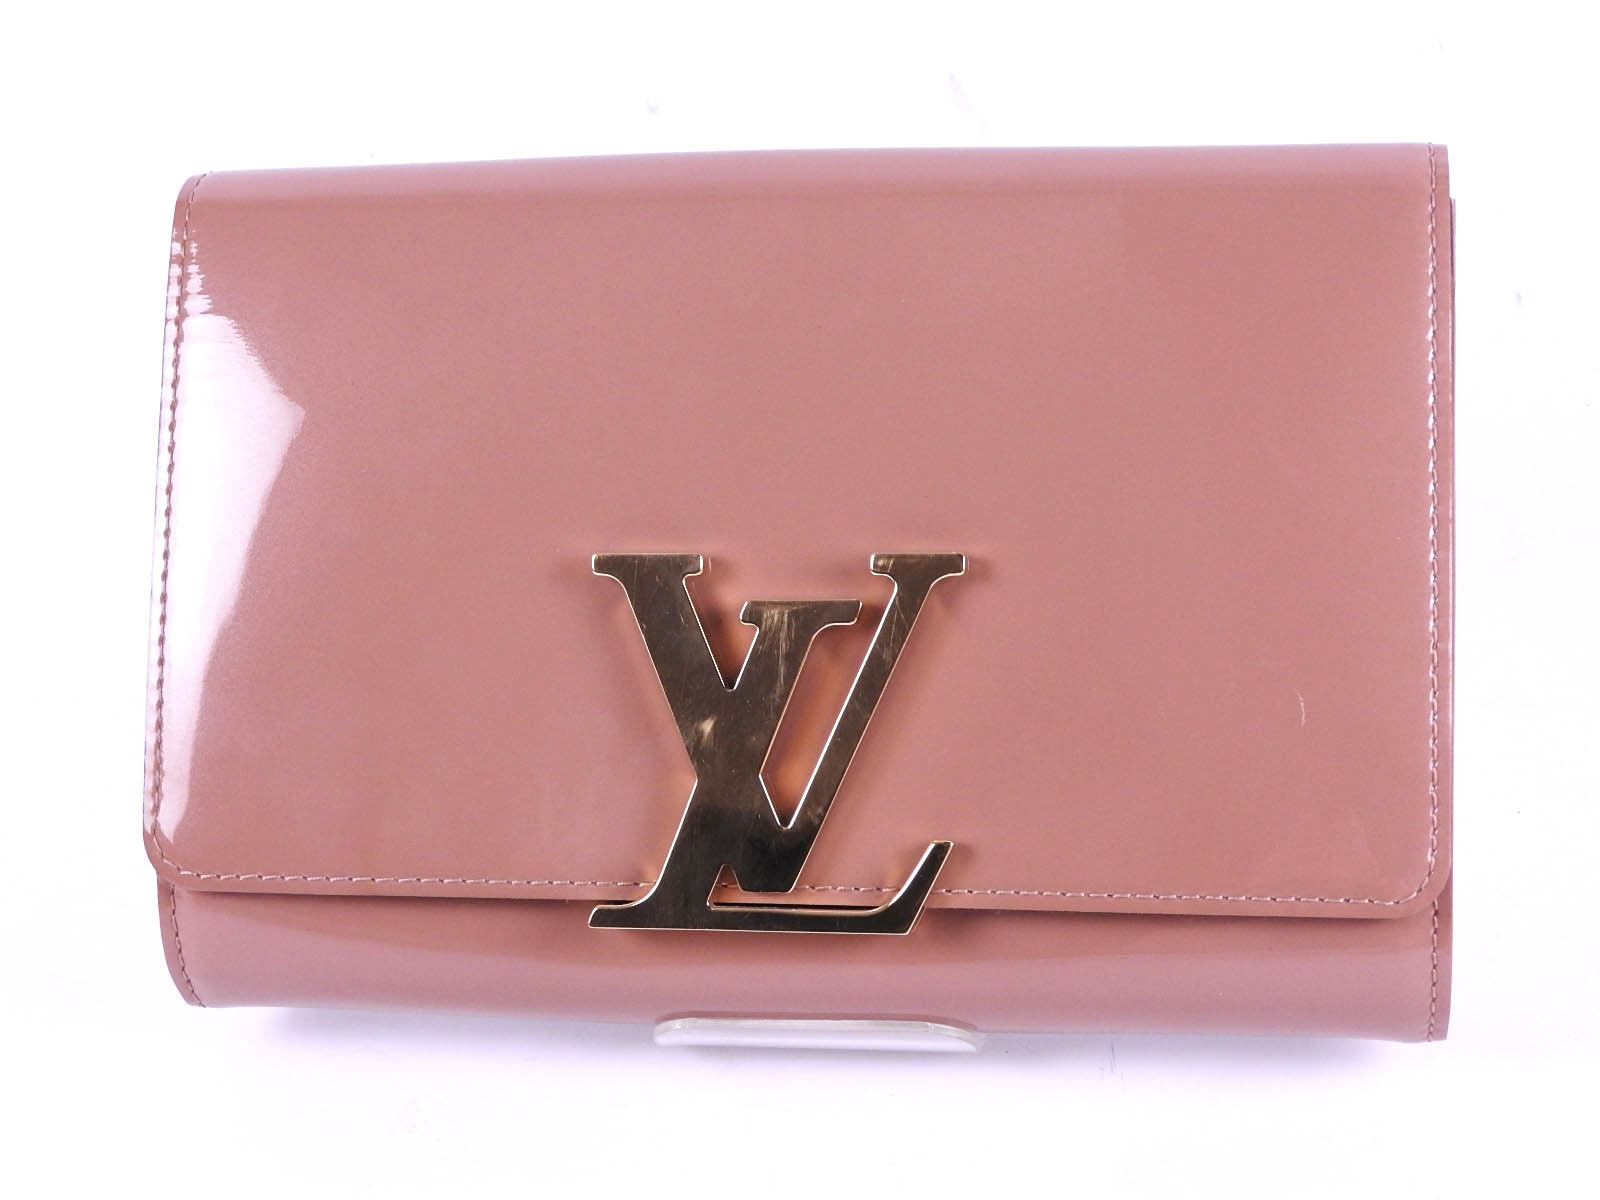 edd7d43a3f4d Auth LOUIS VUITTON Vernis Pochette Louise EW Clutch Hand Bag Rose Velours  Patent Leather Gold M90198 A-8394